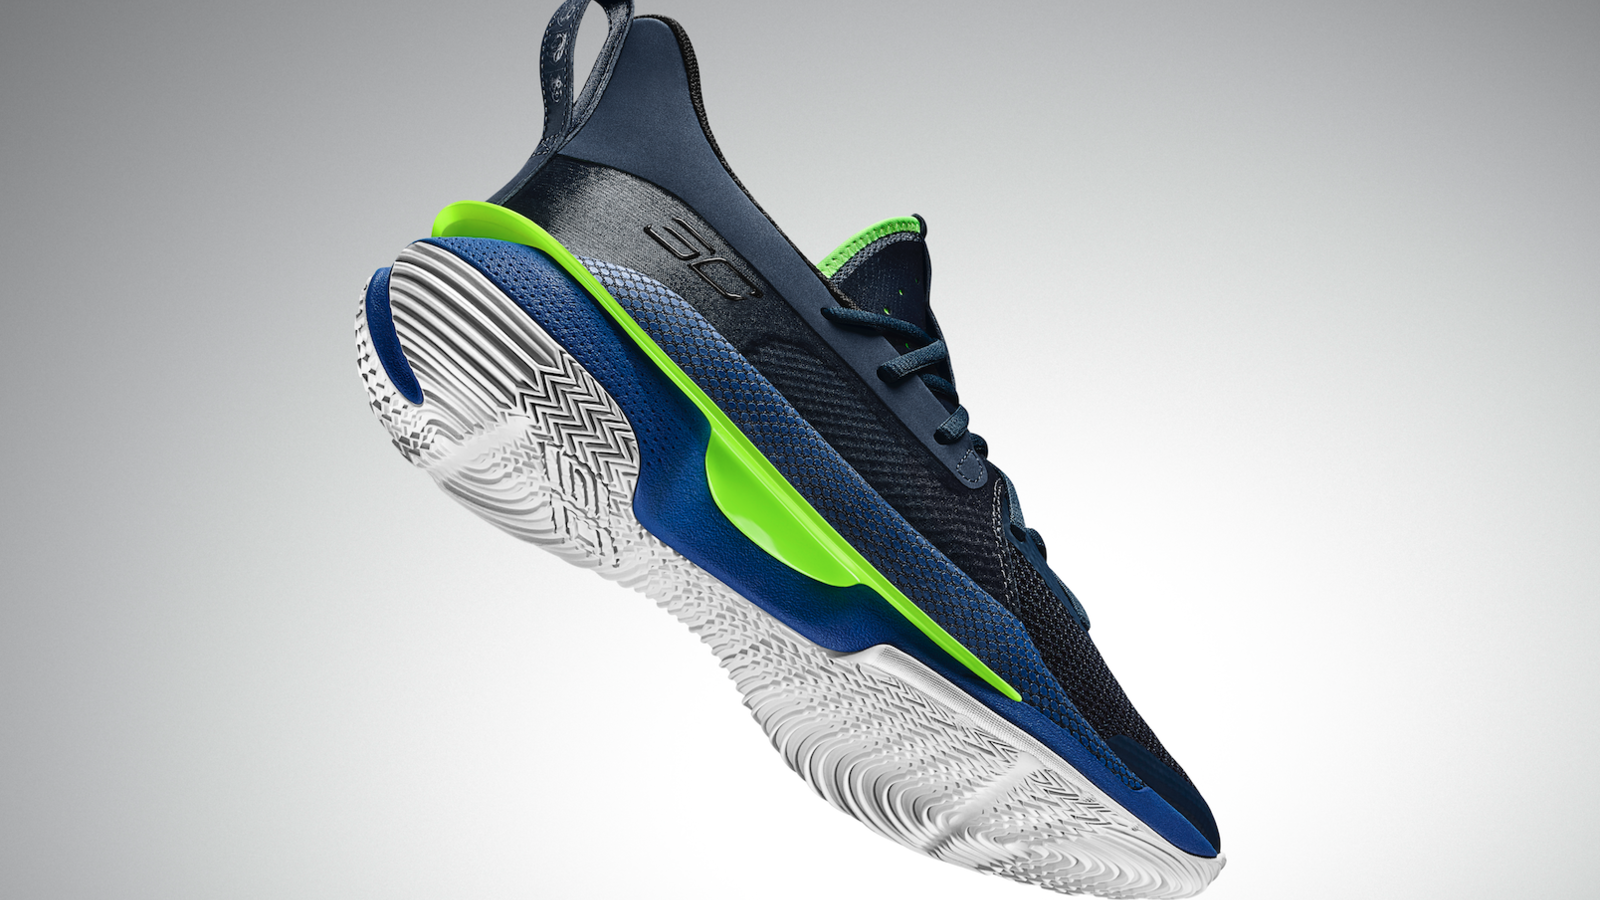 """Steph Curry & Under Armour Nod To """"Dub Nation"""" With Unique Curry 7 Colorway"""